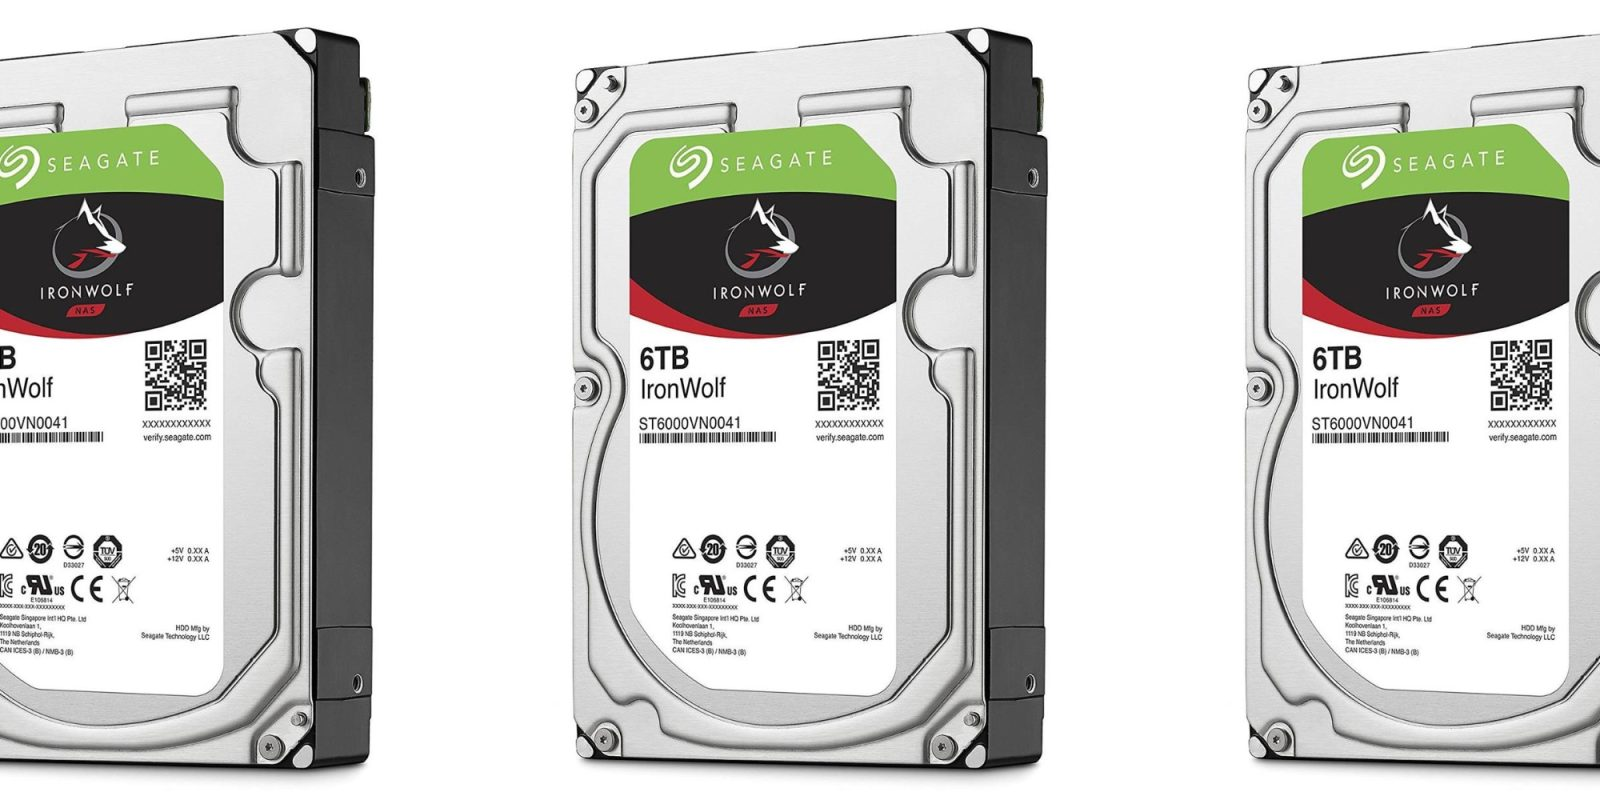 Seagate's IronWolf 6TB NAS Hard Drive drops to 2019 low at $140 ($40 off)